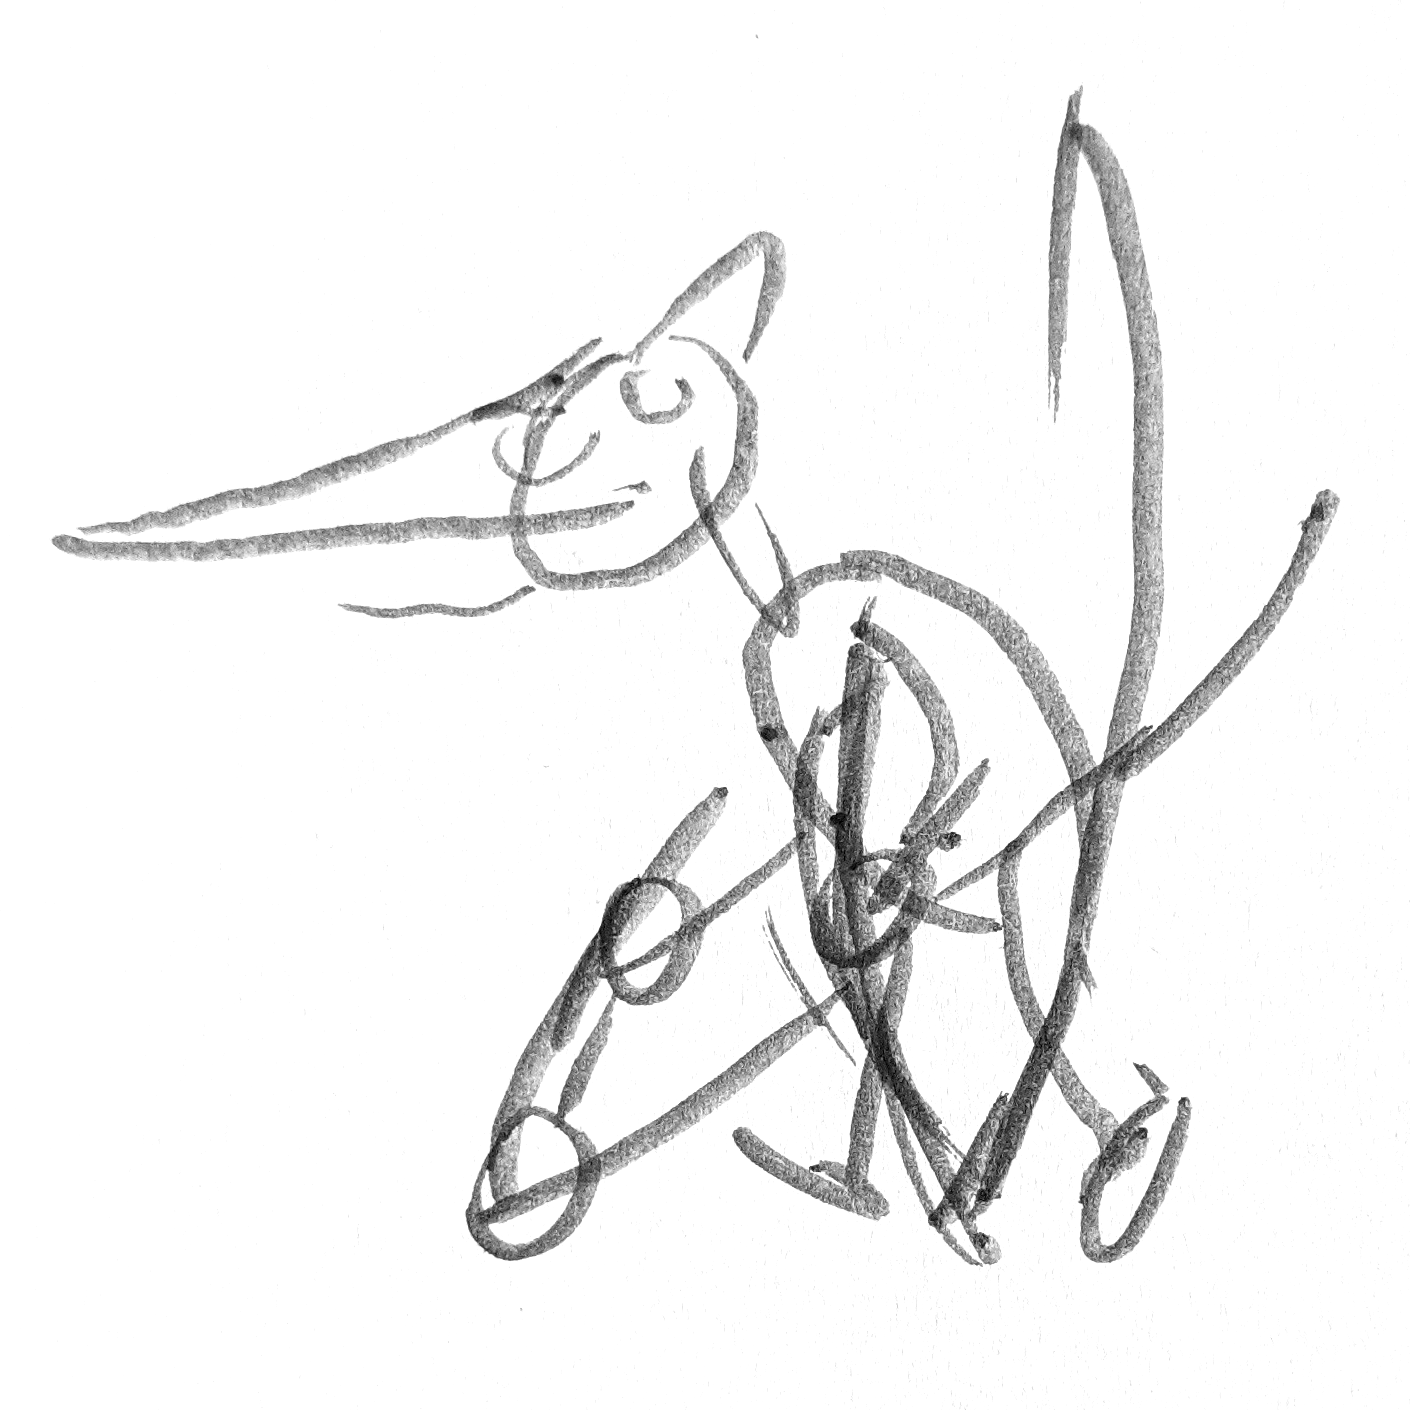 A Pteranodon drawing with slightly more detail